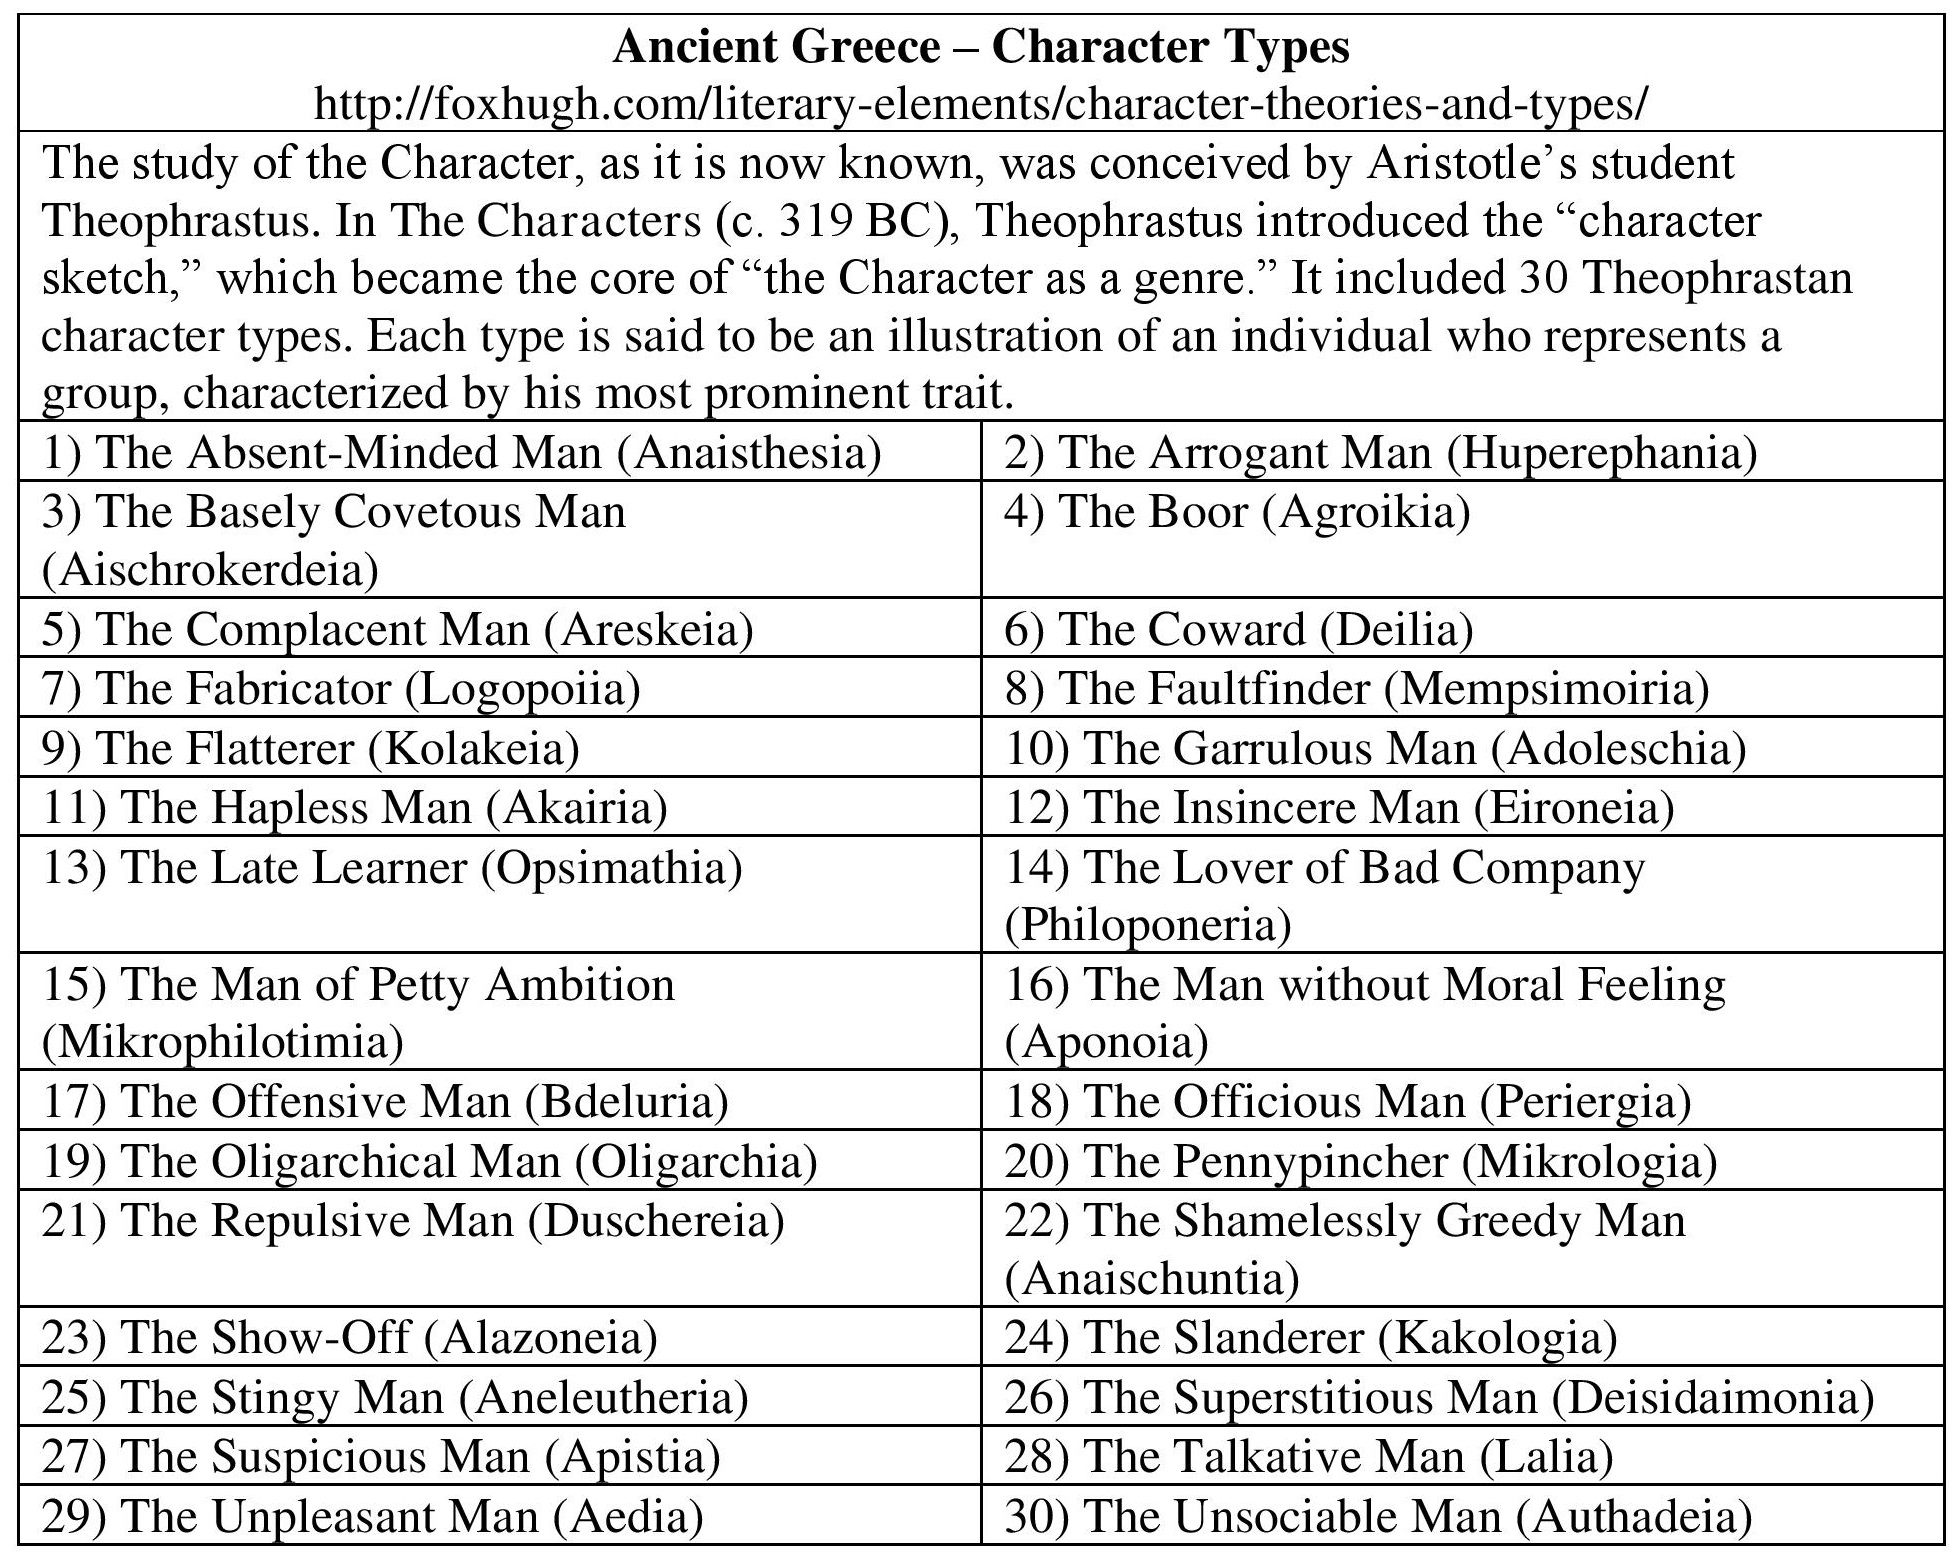 character theories and types hugh fox iii 1 basic character types 2 ancient character types